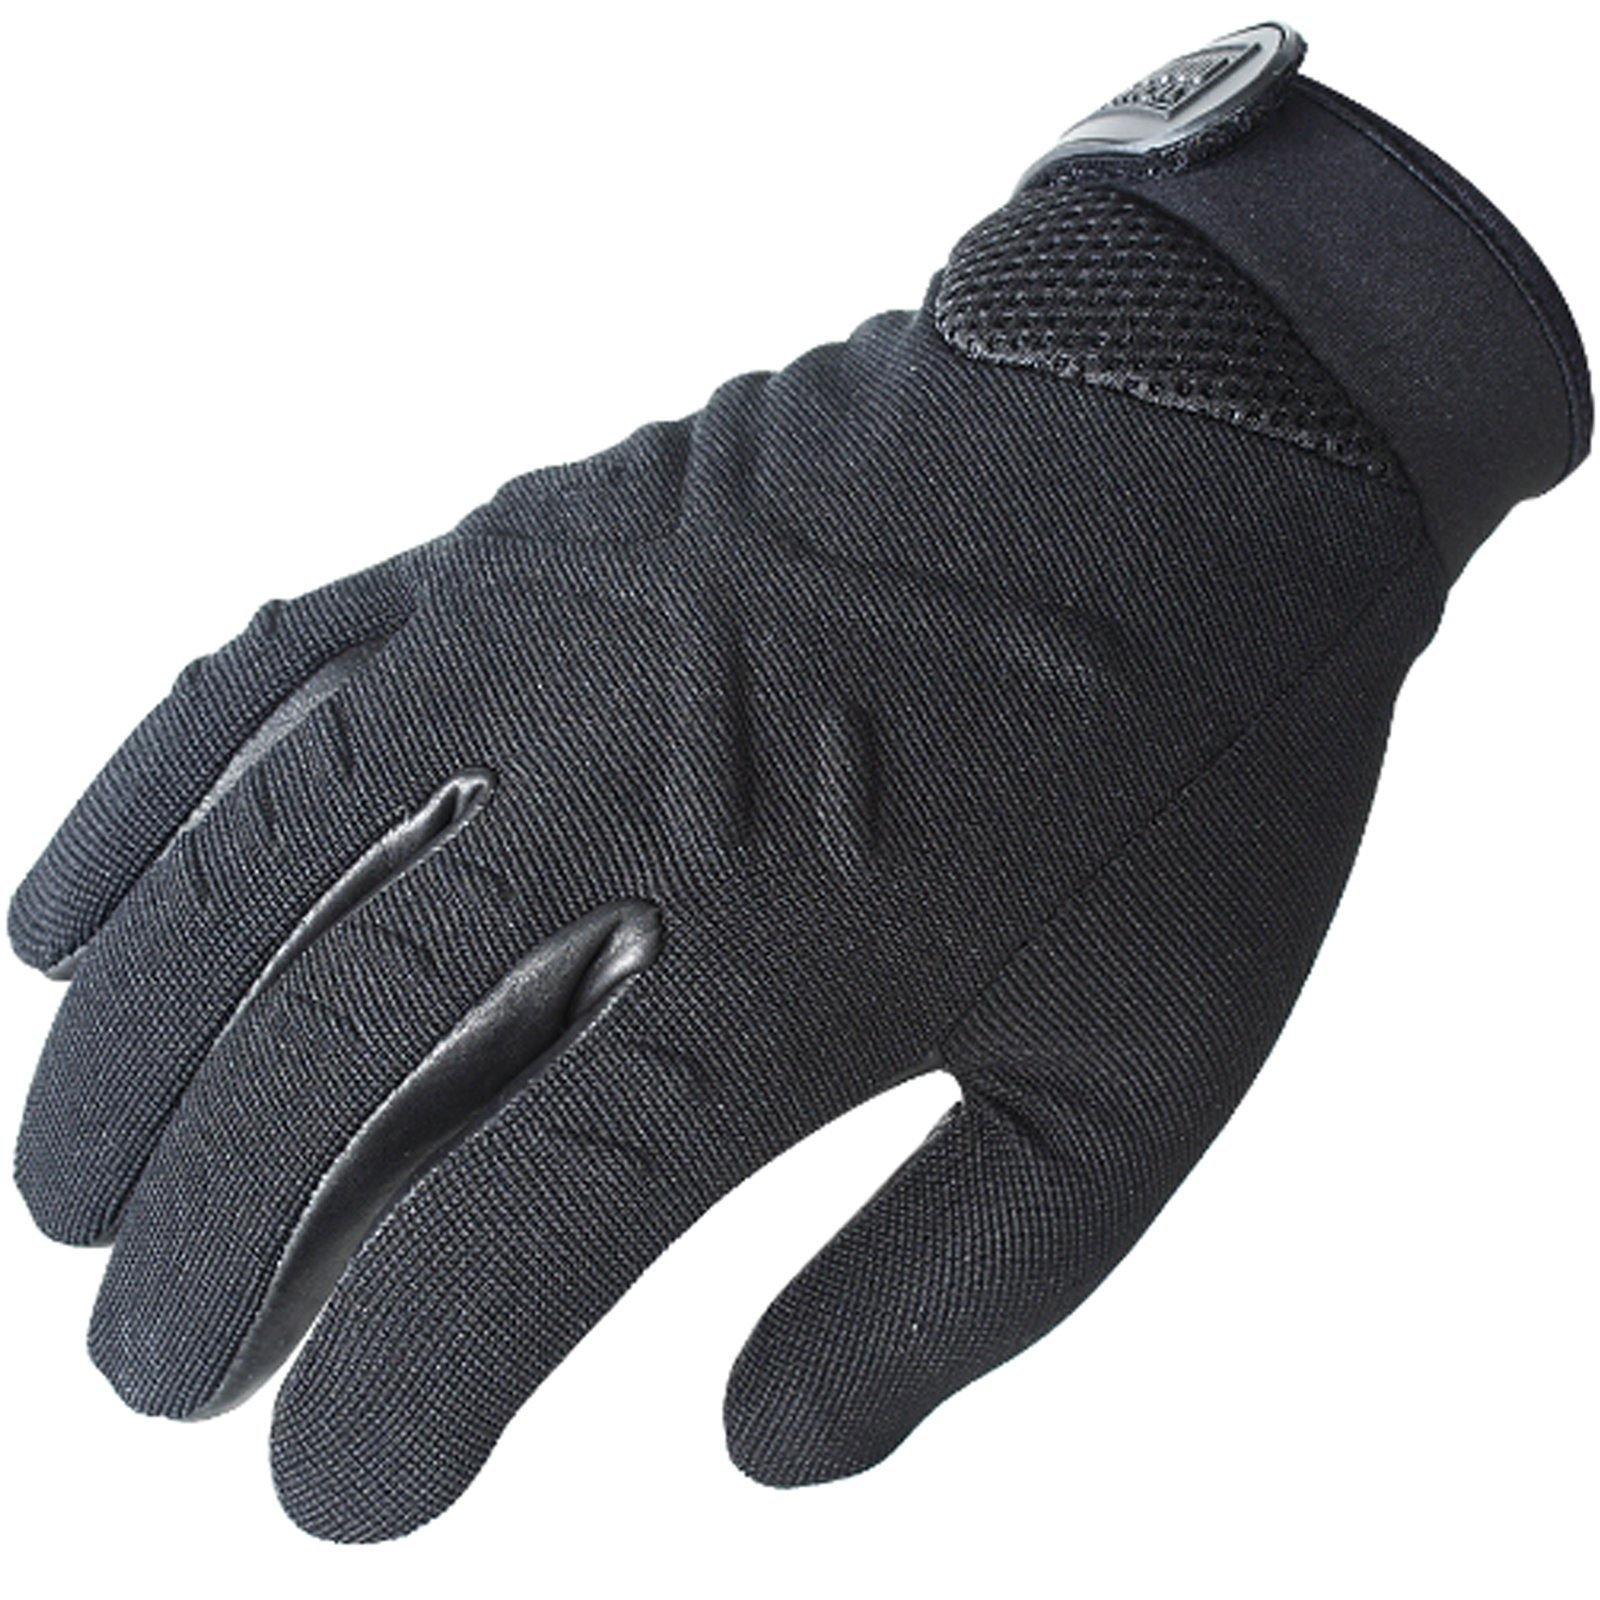 VooDoo Tactical 20-9293001097 Spectra Gloves, Black, 2XL